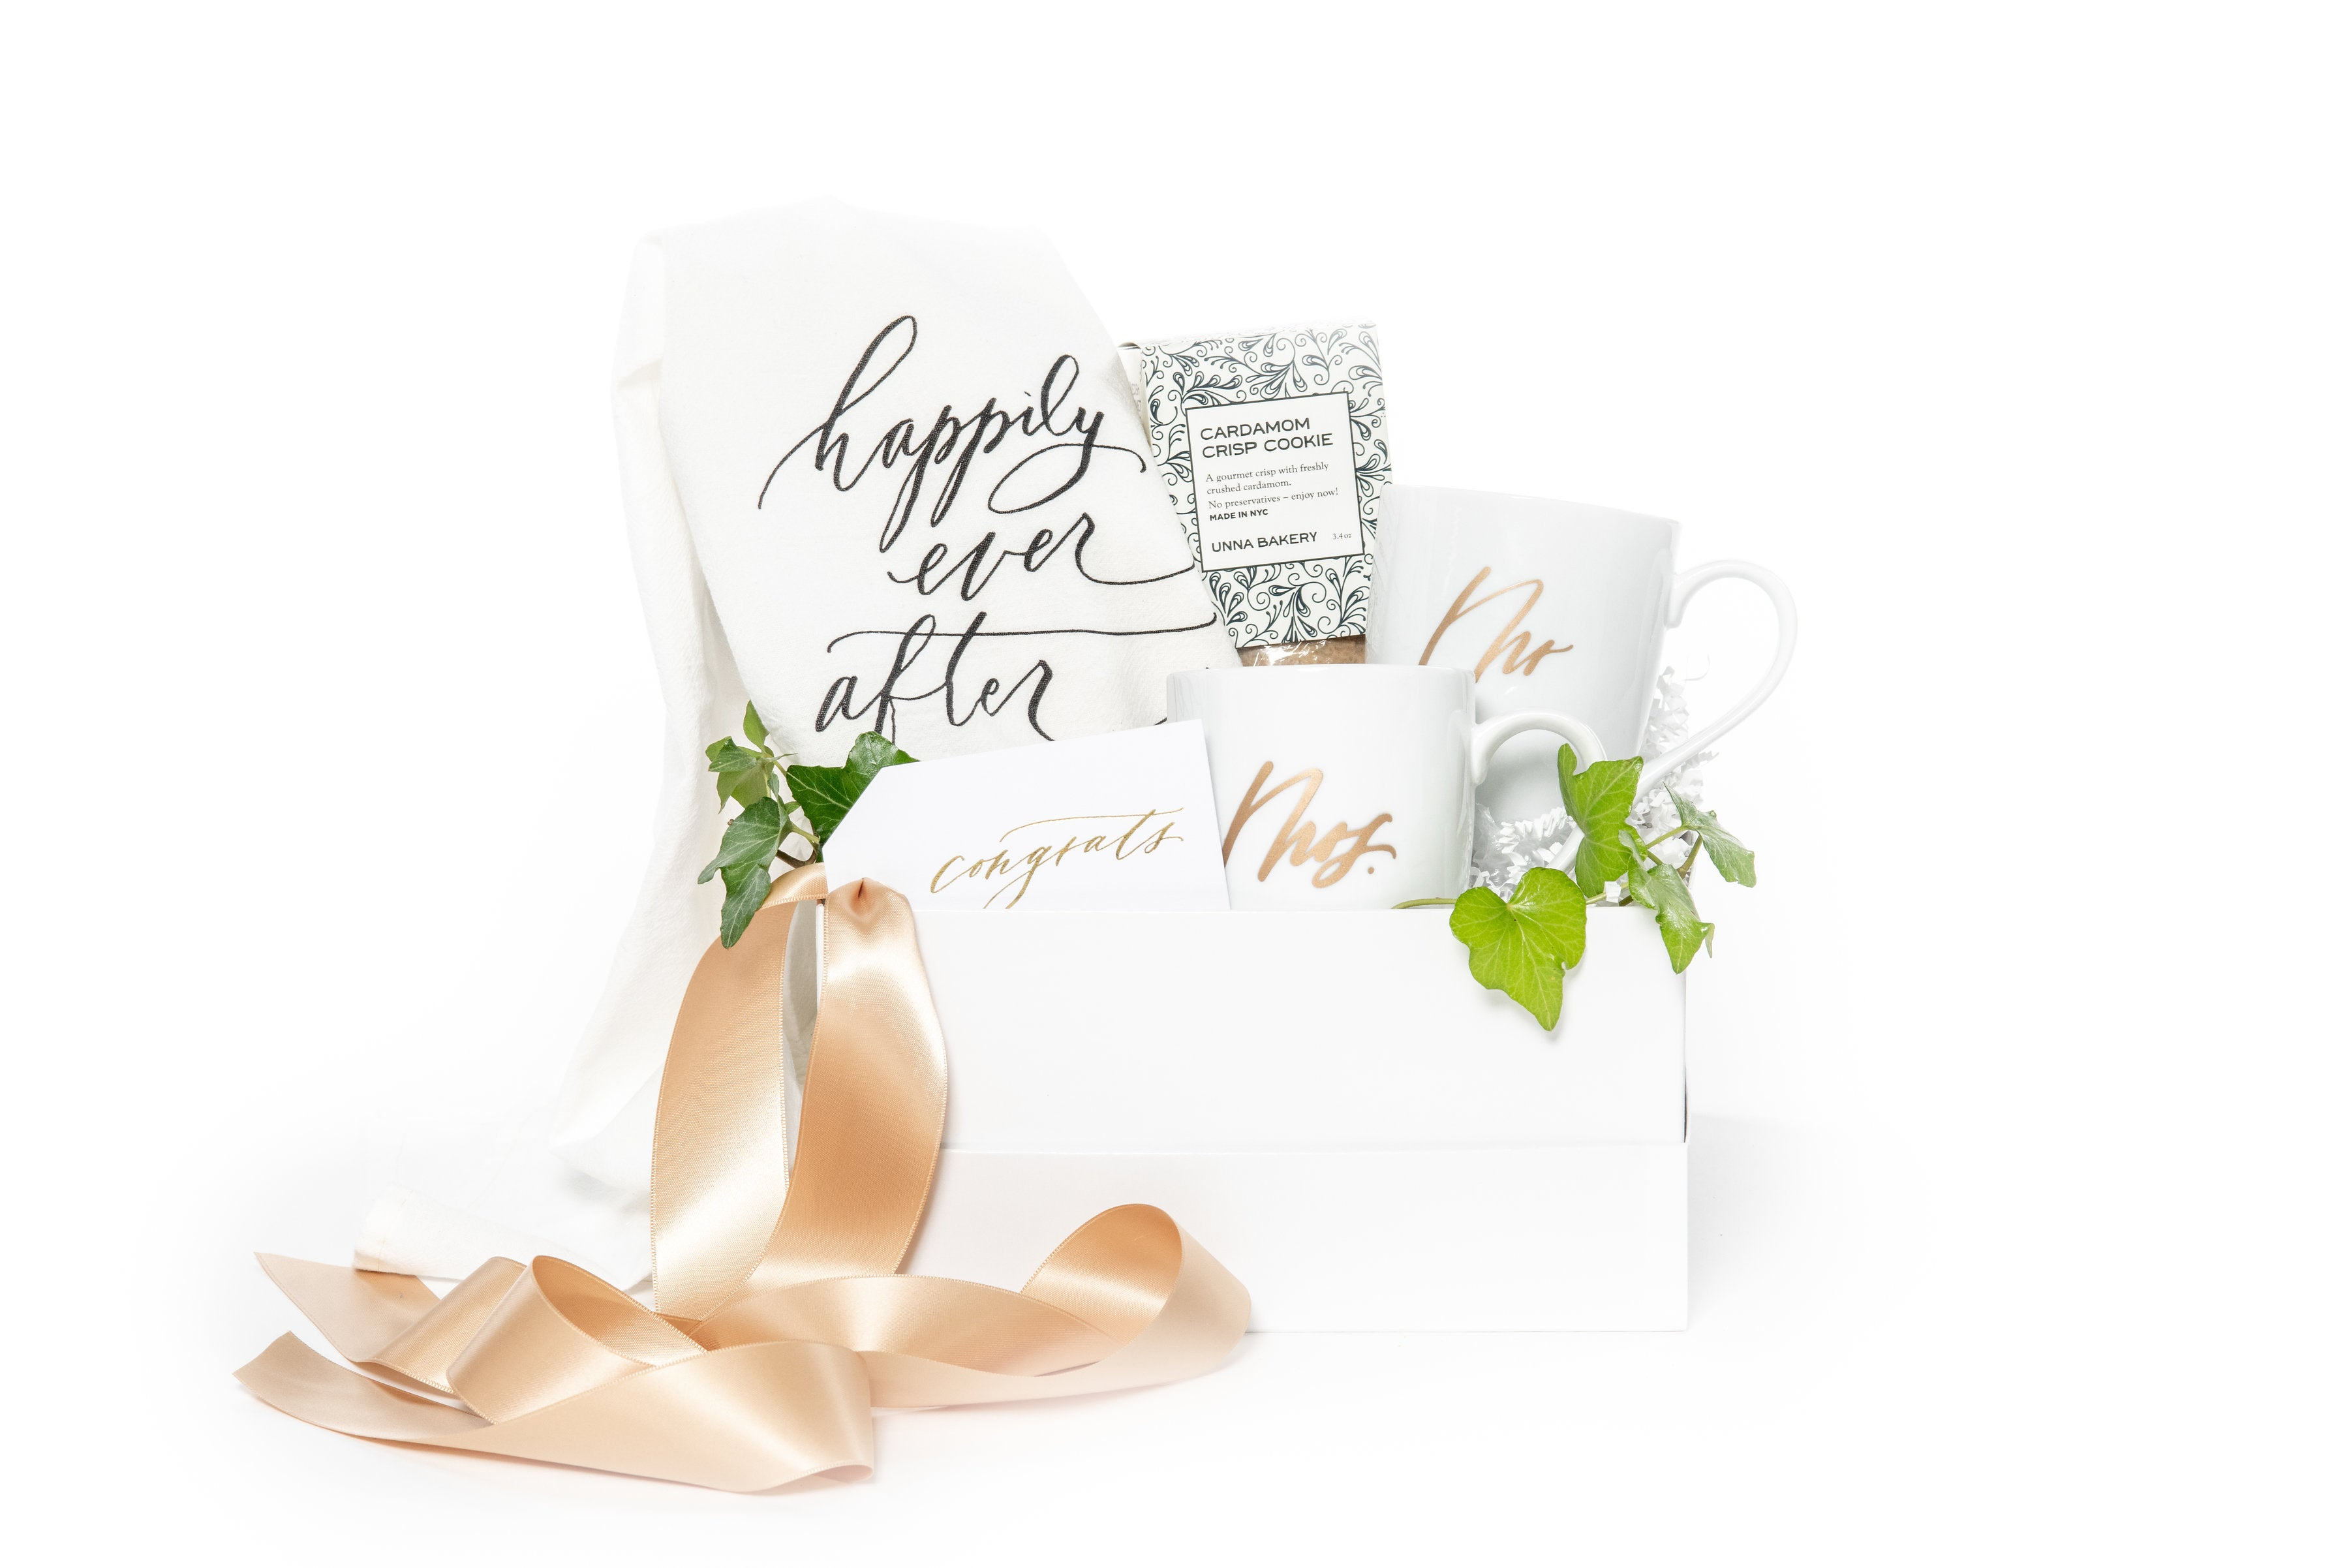 Engagement curated gift boxes